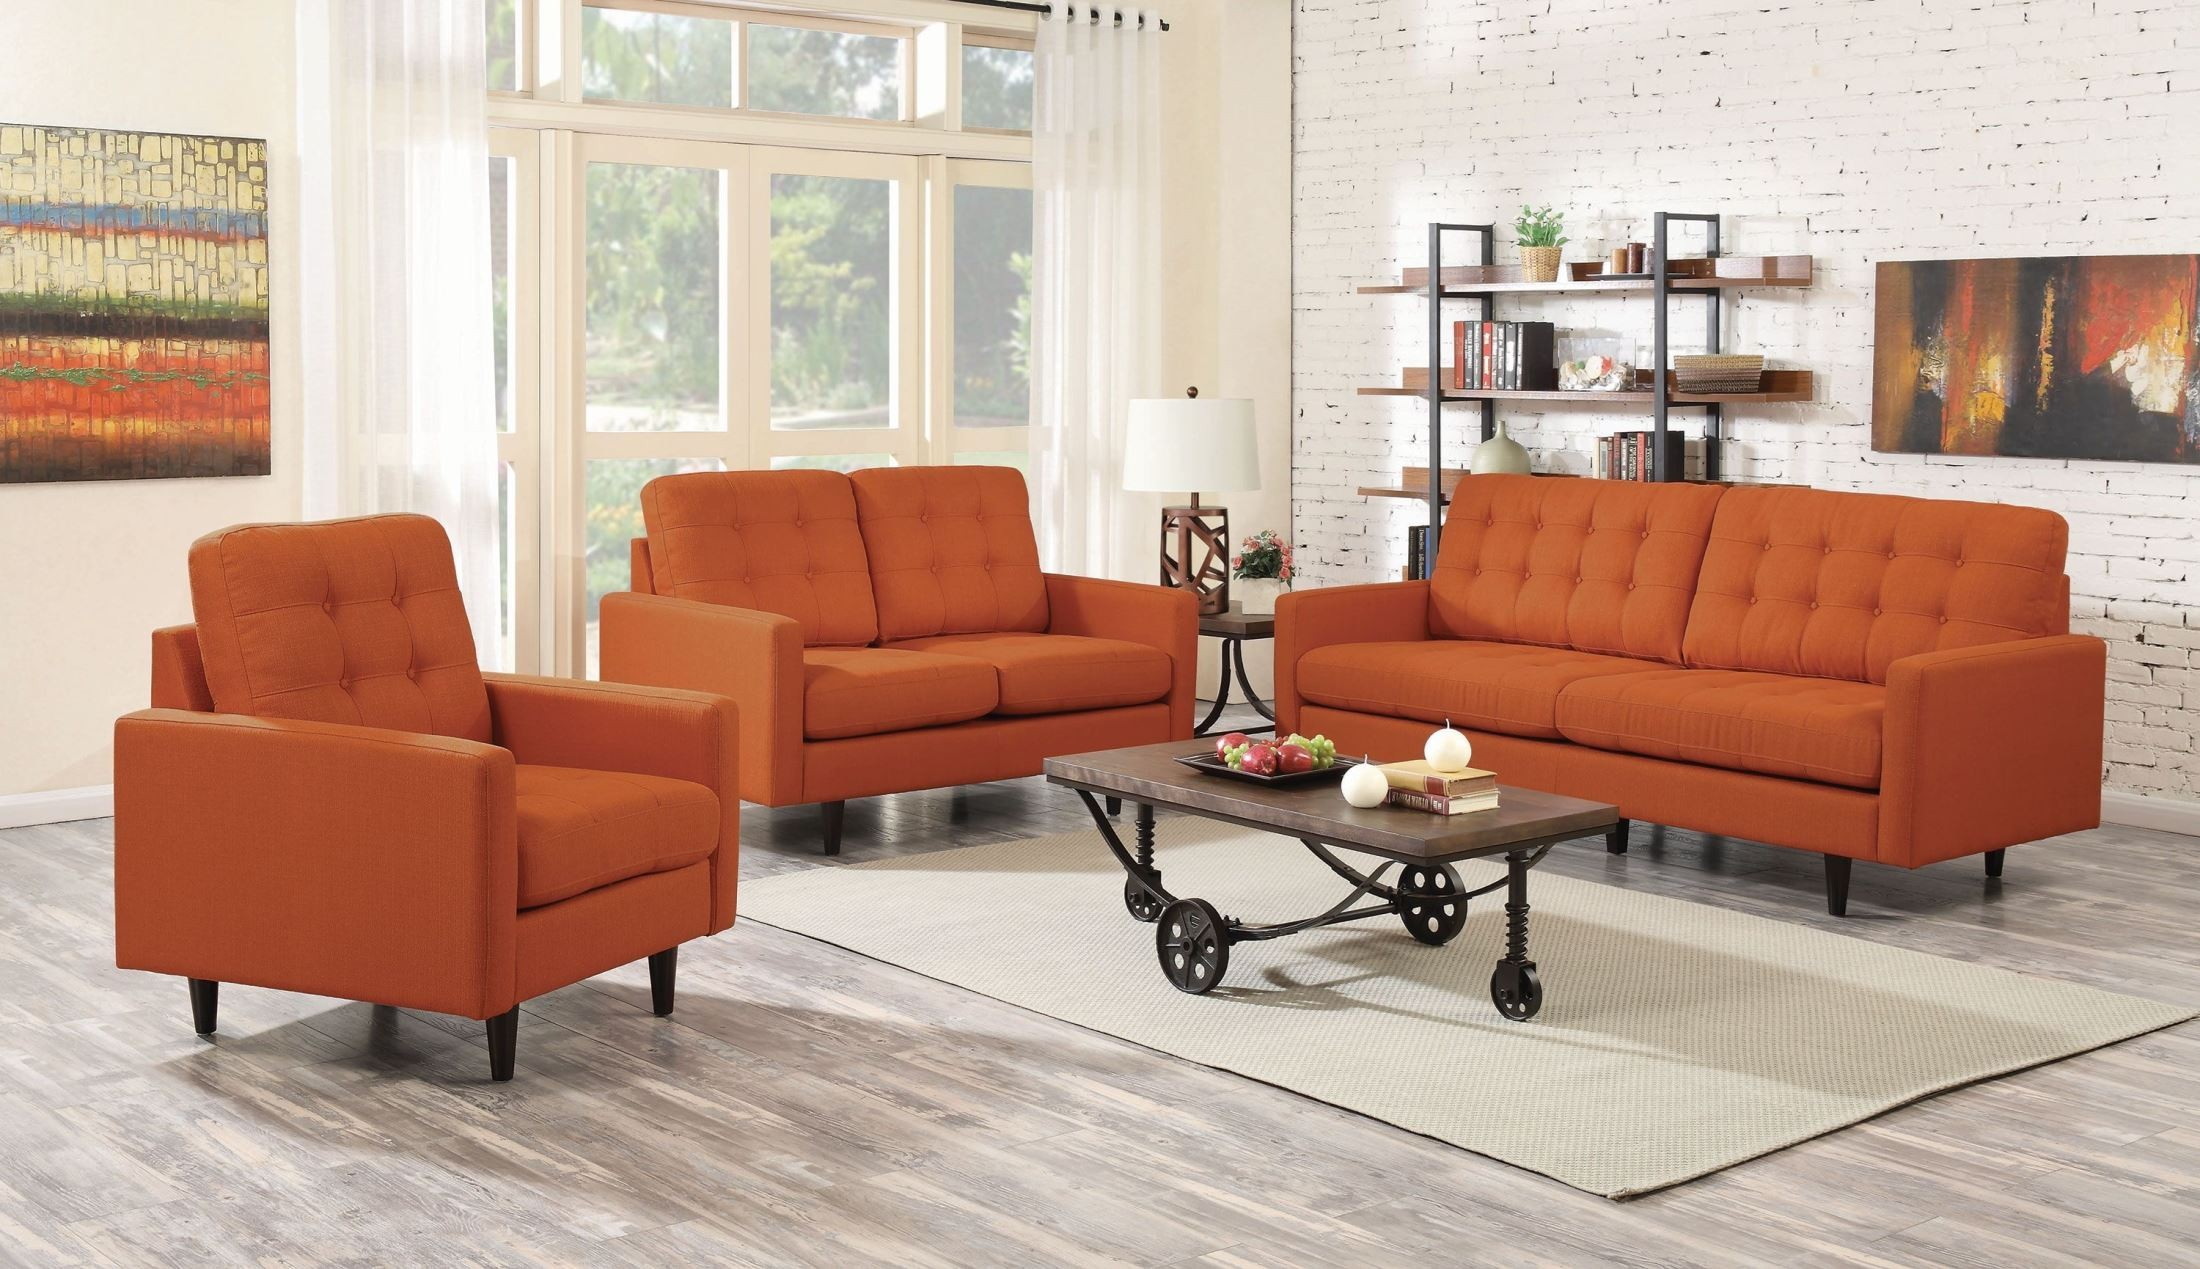 kesson orange living room set 505371 coaster furniture